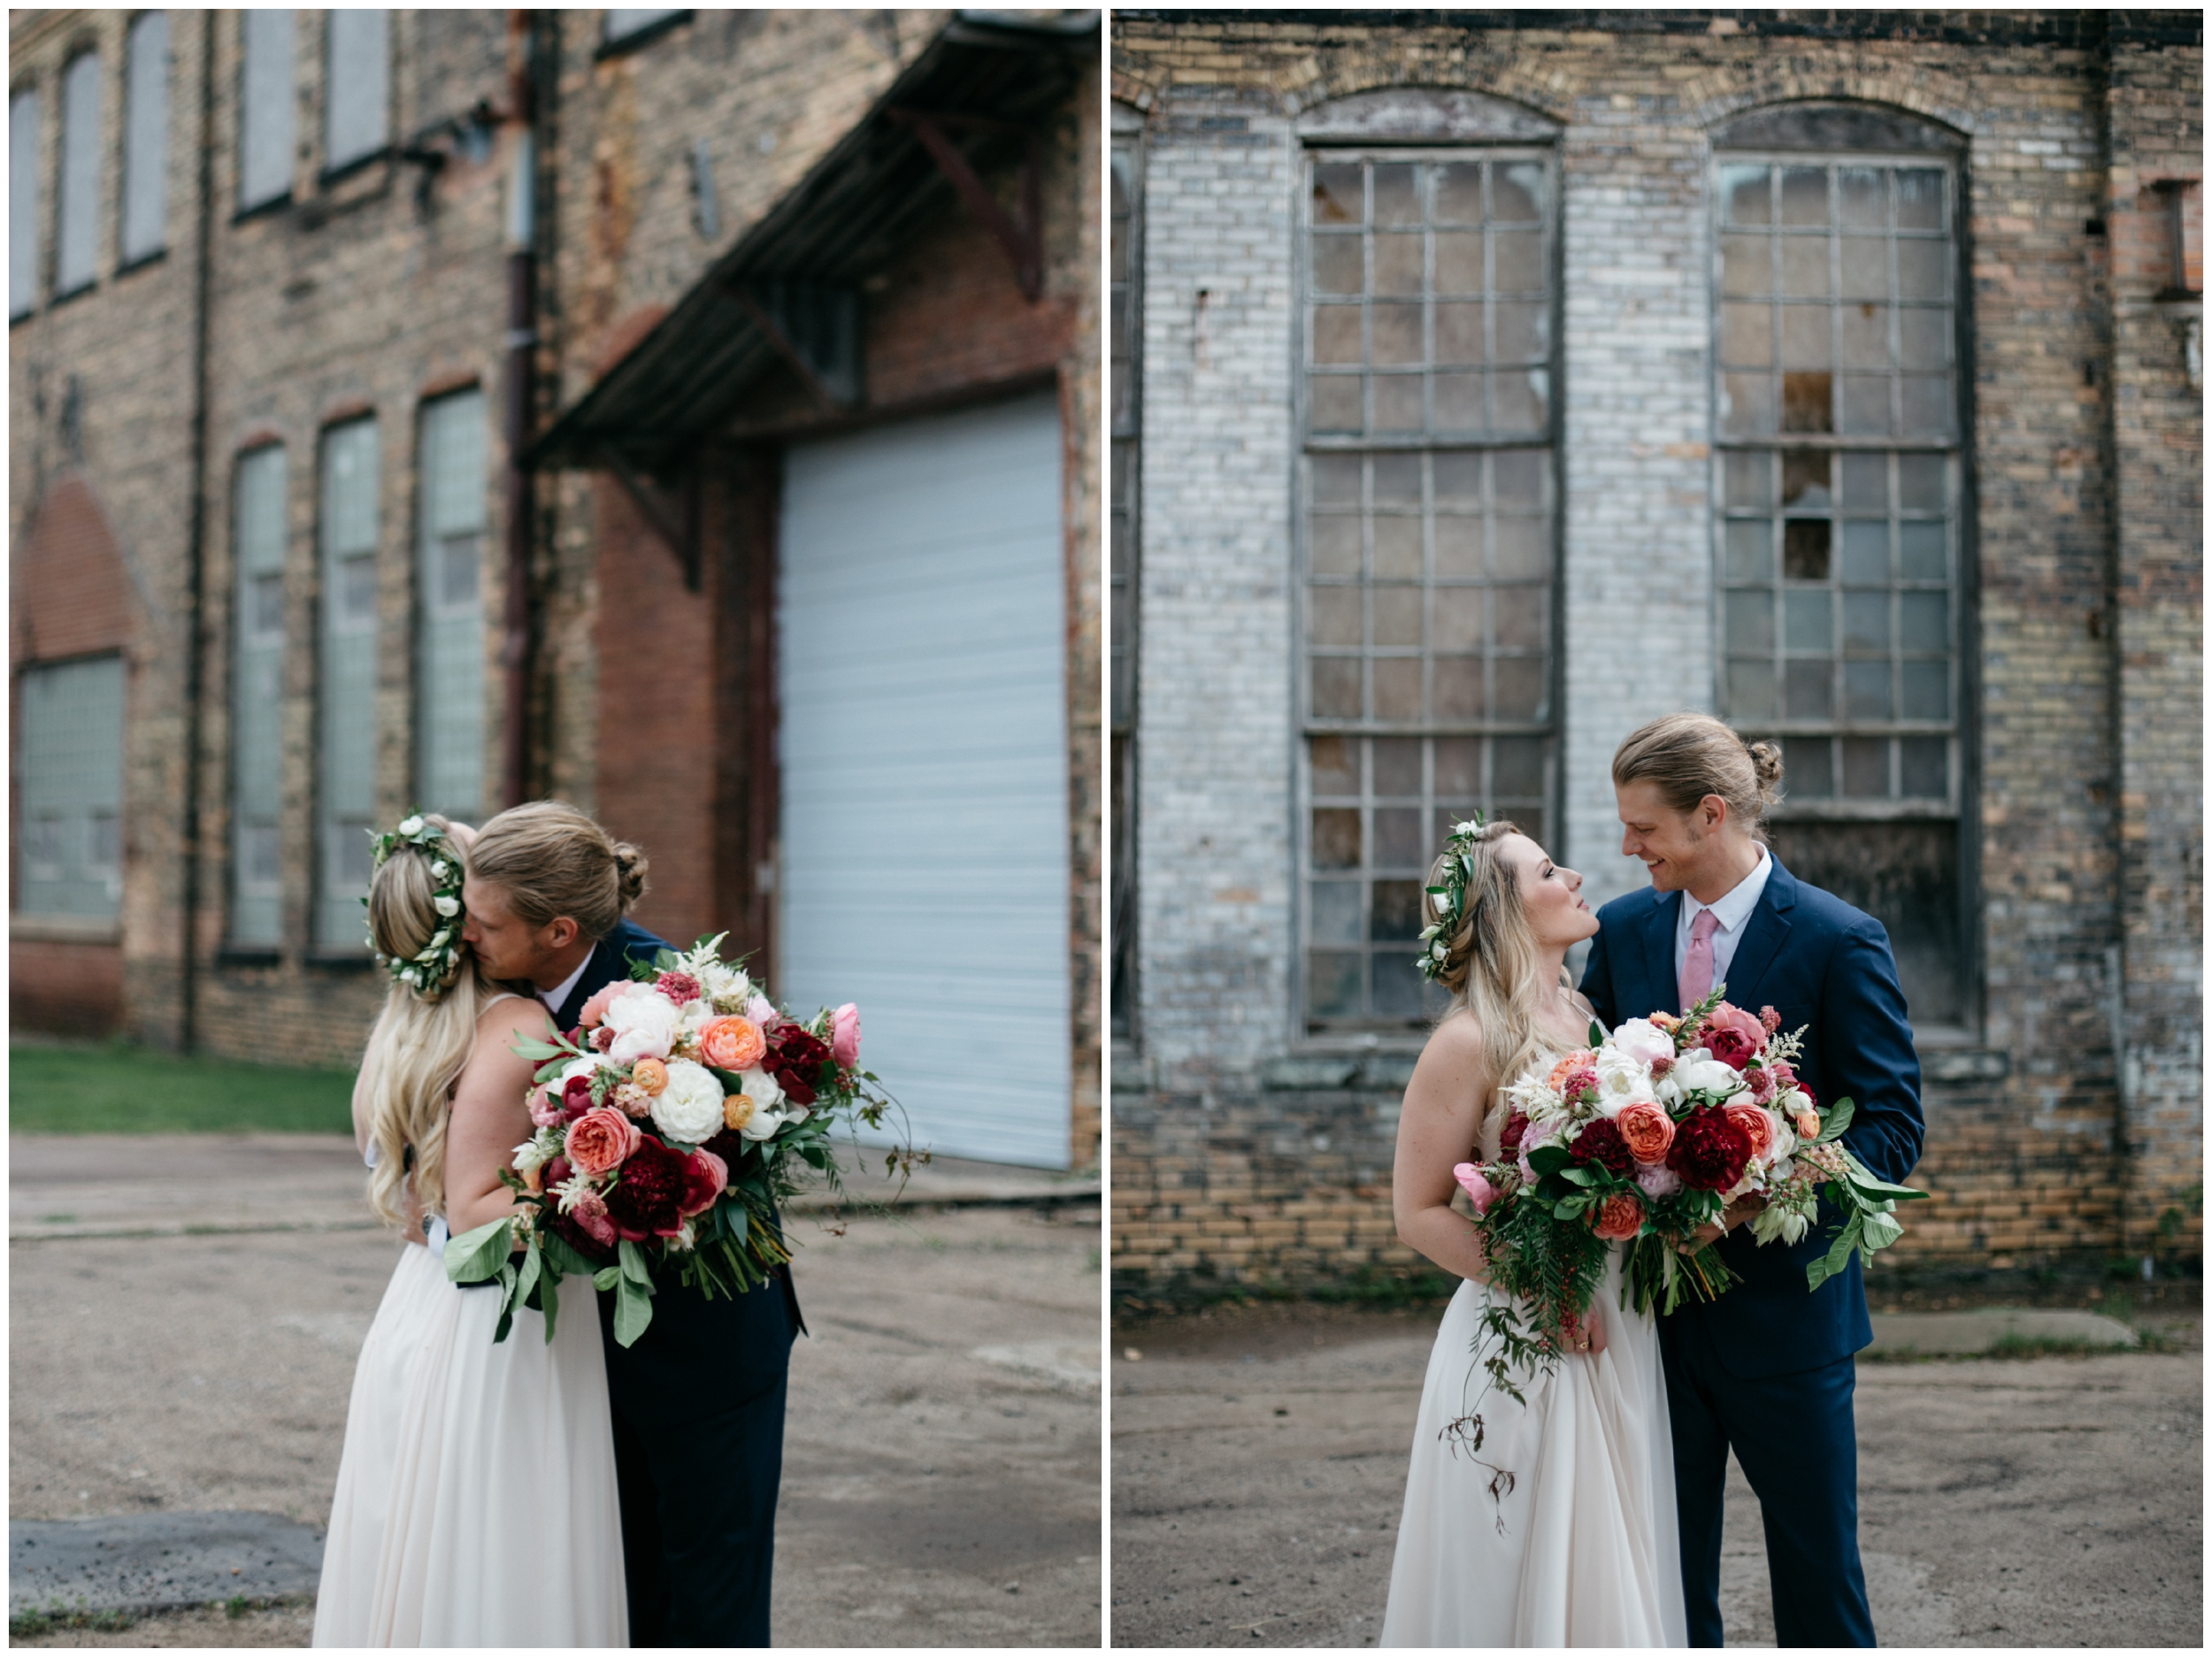 Whimsical industrial wedding at the NP Event Space